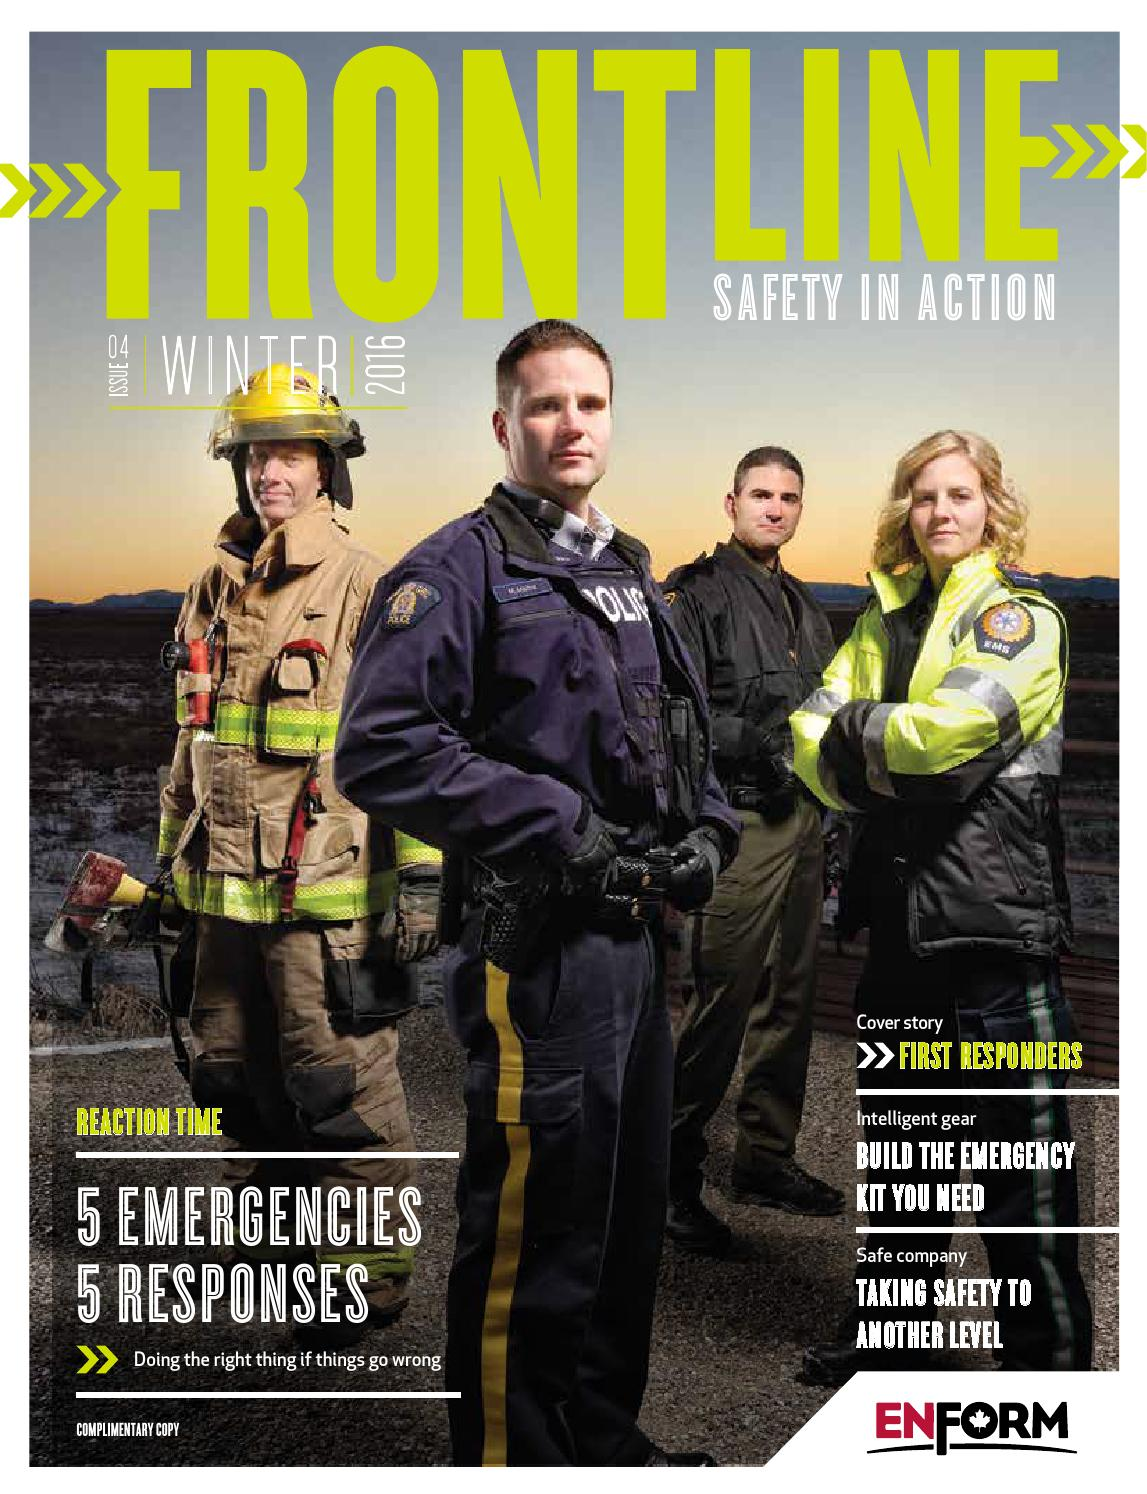 Frontline Winter 2016 Issue By Energy Safety Canada Issuu How To Build Whistle Responder